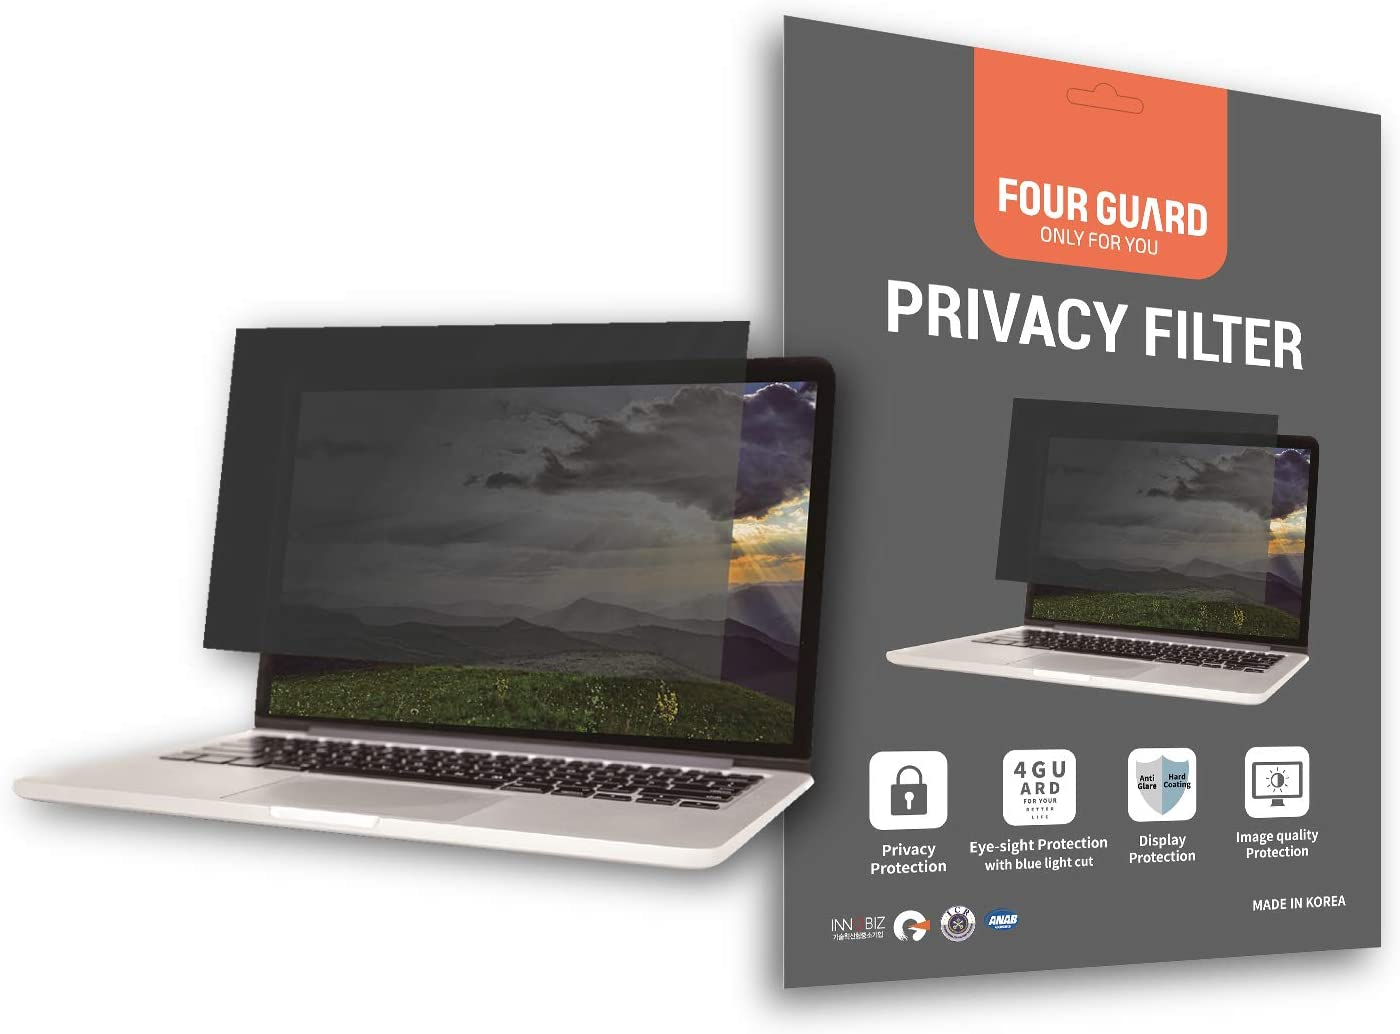 Four Guard Privacy Screen Filter for Laptop-Notebook 15.6 Inch 16:9 Widescreen - Privacy Protection Blue Light Reduction Anti Glare Anti Scratch Protector Film